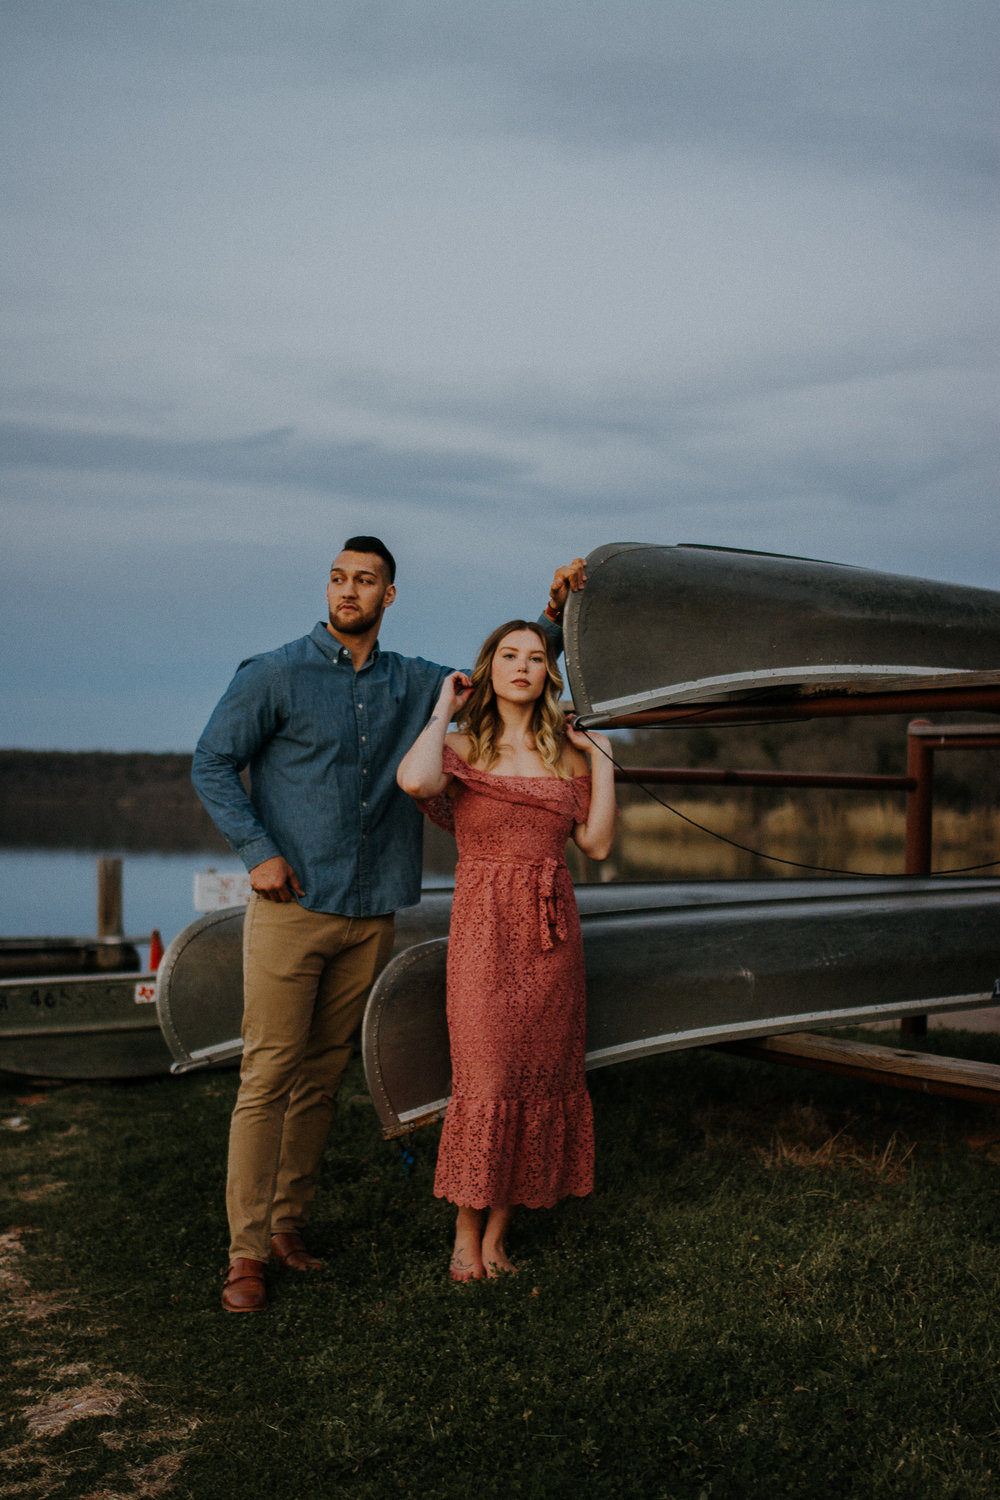 Dallas_Fort_Worth_engagement_Photographer_mineral_wells_texas_42